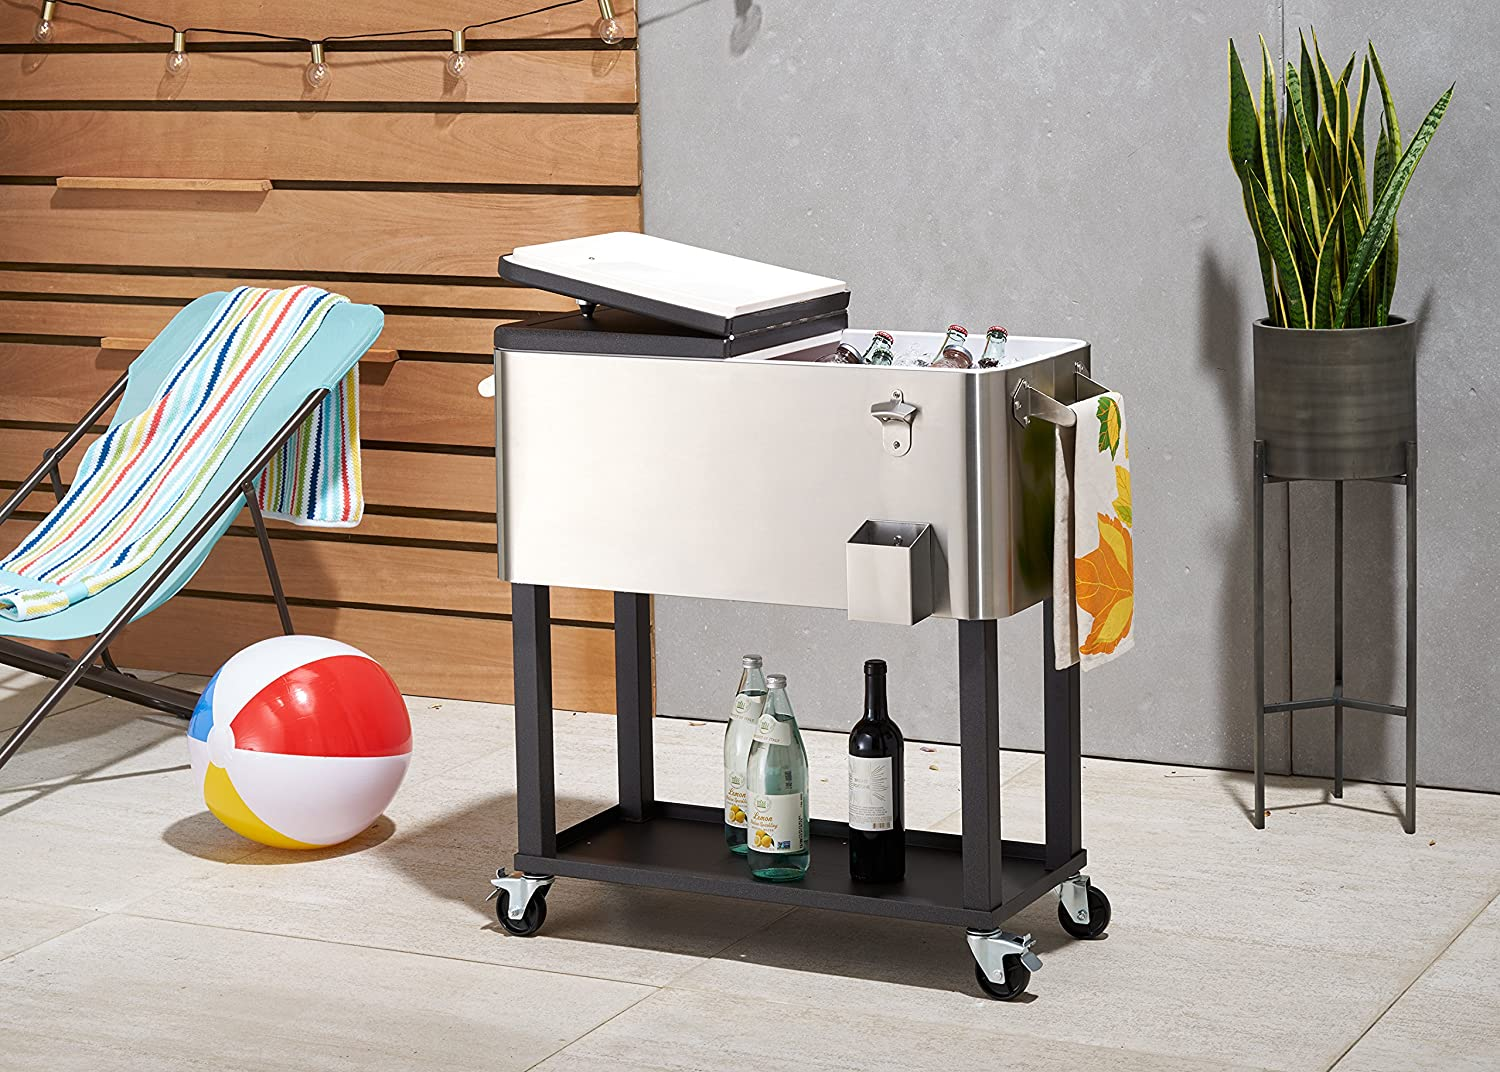 Charming Amazon.com: TRINITY TXK 0802 Stainless Steel Cooler With Shelf: Garden U0026  Outdoor